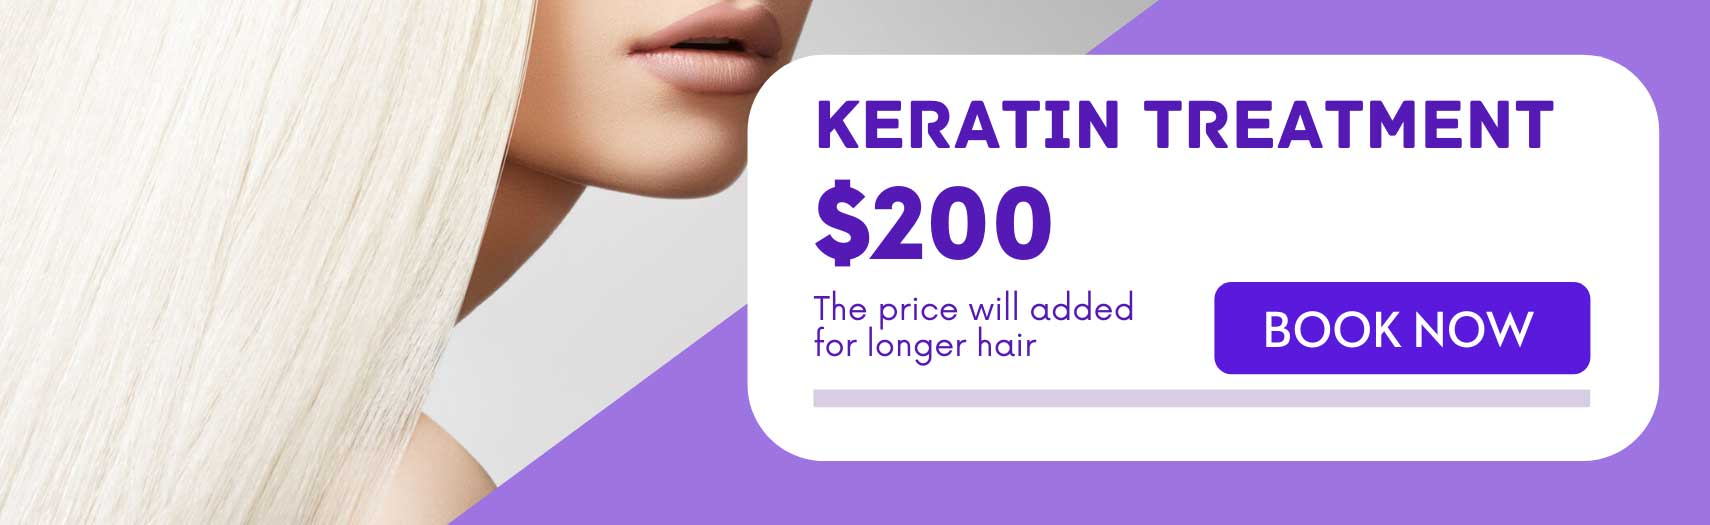 Keratin treatment banner